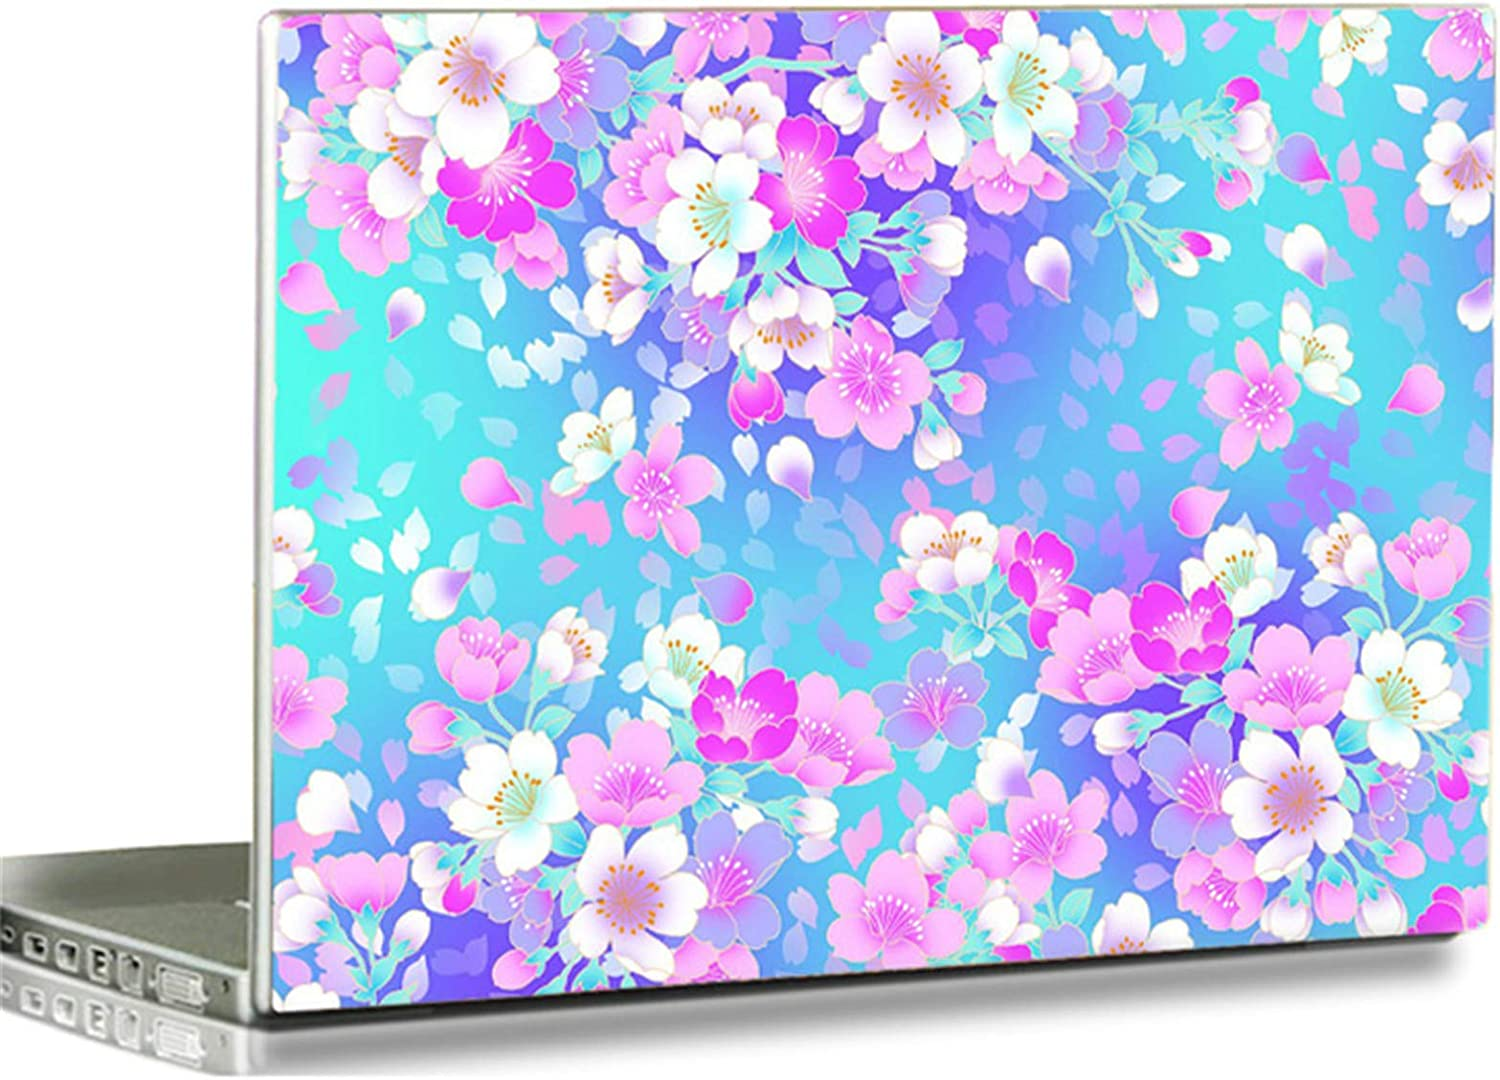 "Baocool 15 15.6 inch Laptop Notebook Skin Vinyl Sticker Cover Decal Fits 12"" 13.3"" 14"" 15.6"" 16"" HP Samsung Lenovo Apple Mac Dell Compaq Asus Acer Laptop Notebook PC (Beautiful Flower)"